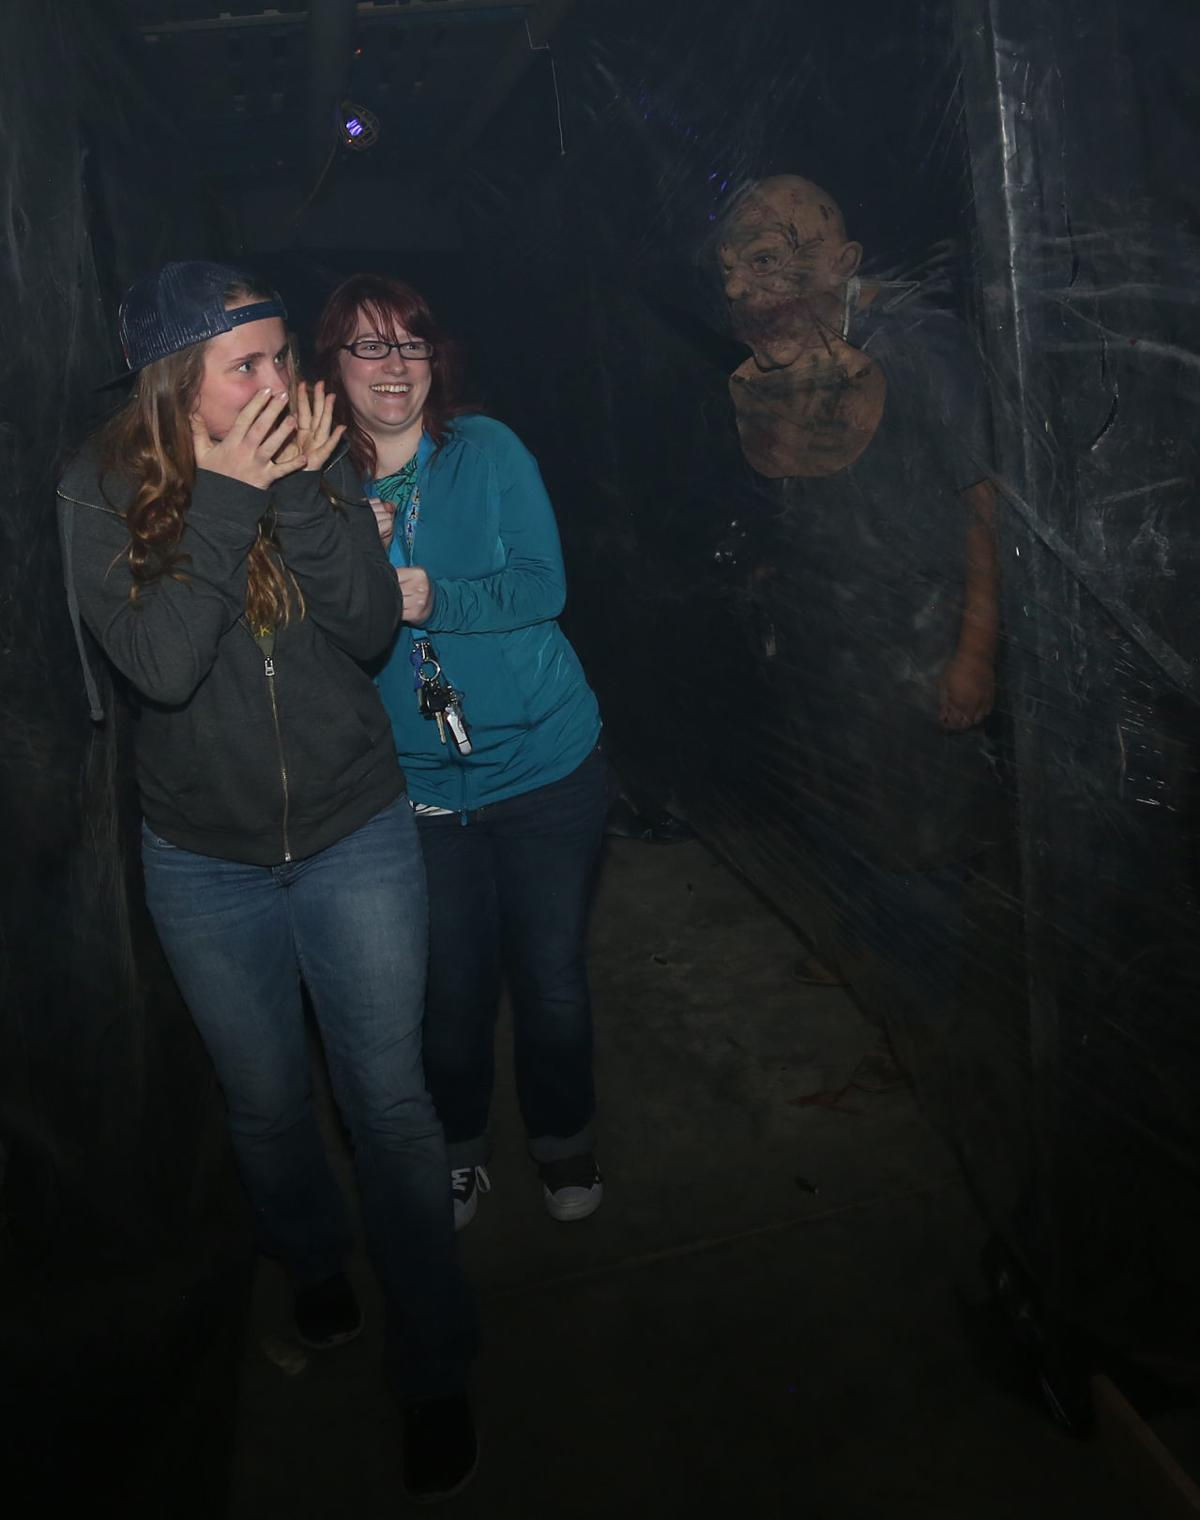 Haunted house 1 (copy)